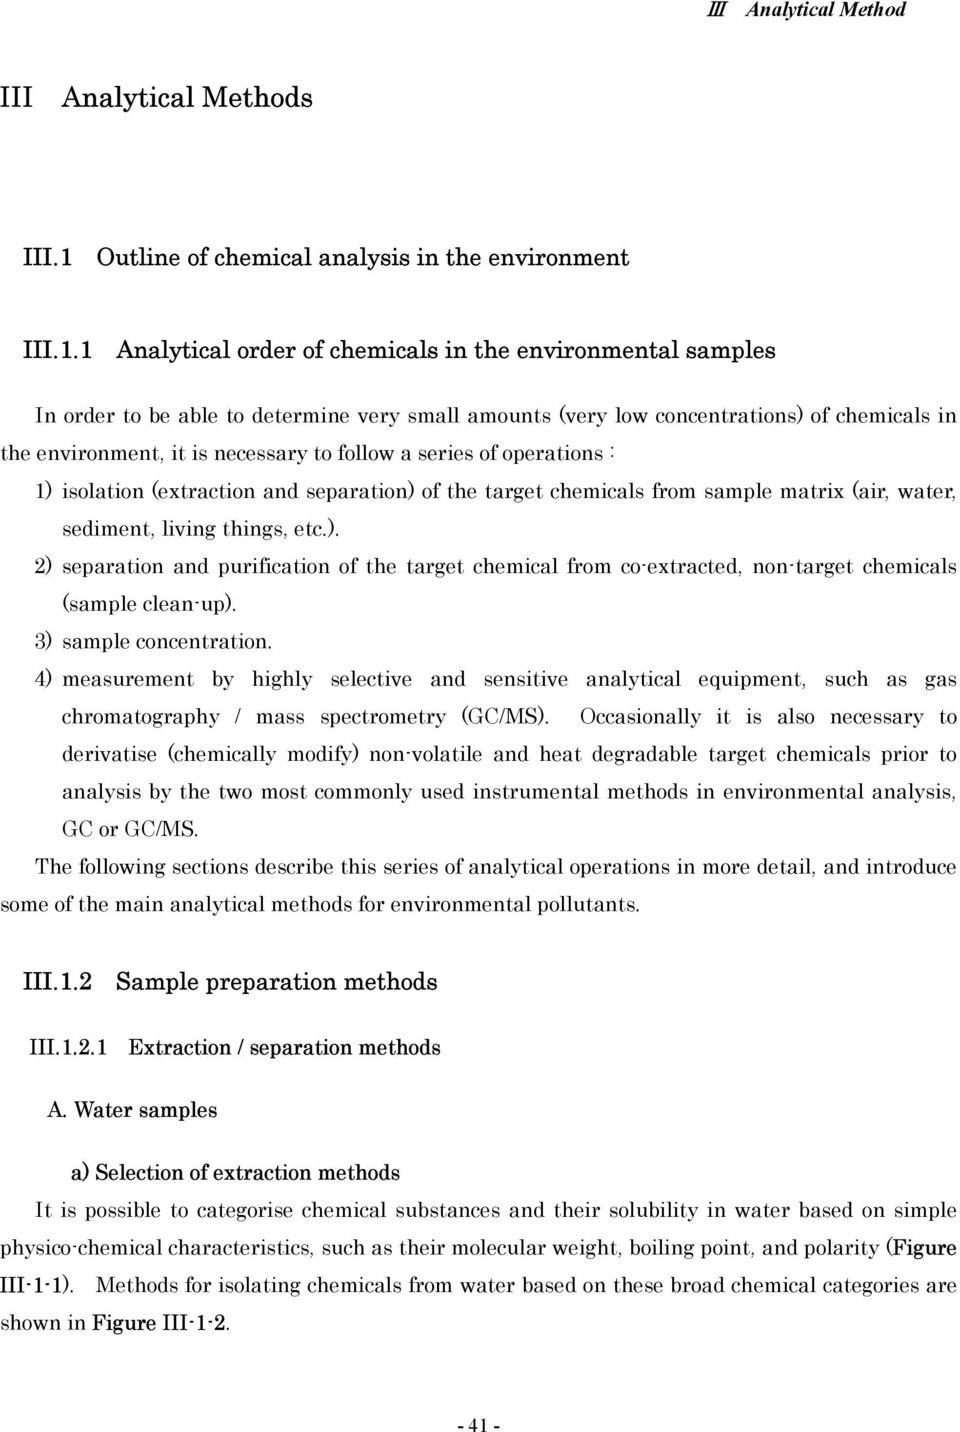 1 Analytical order of chemicals in the environmental samples In order to be able to determine very small amounts (very low concentrations) of chemicals in the environment, it is necessary to follow a